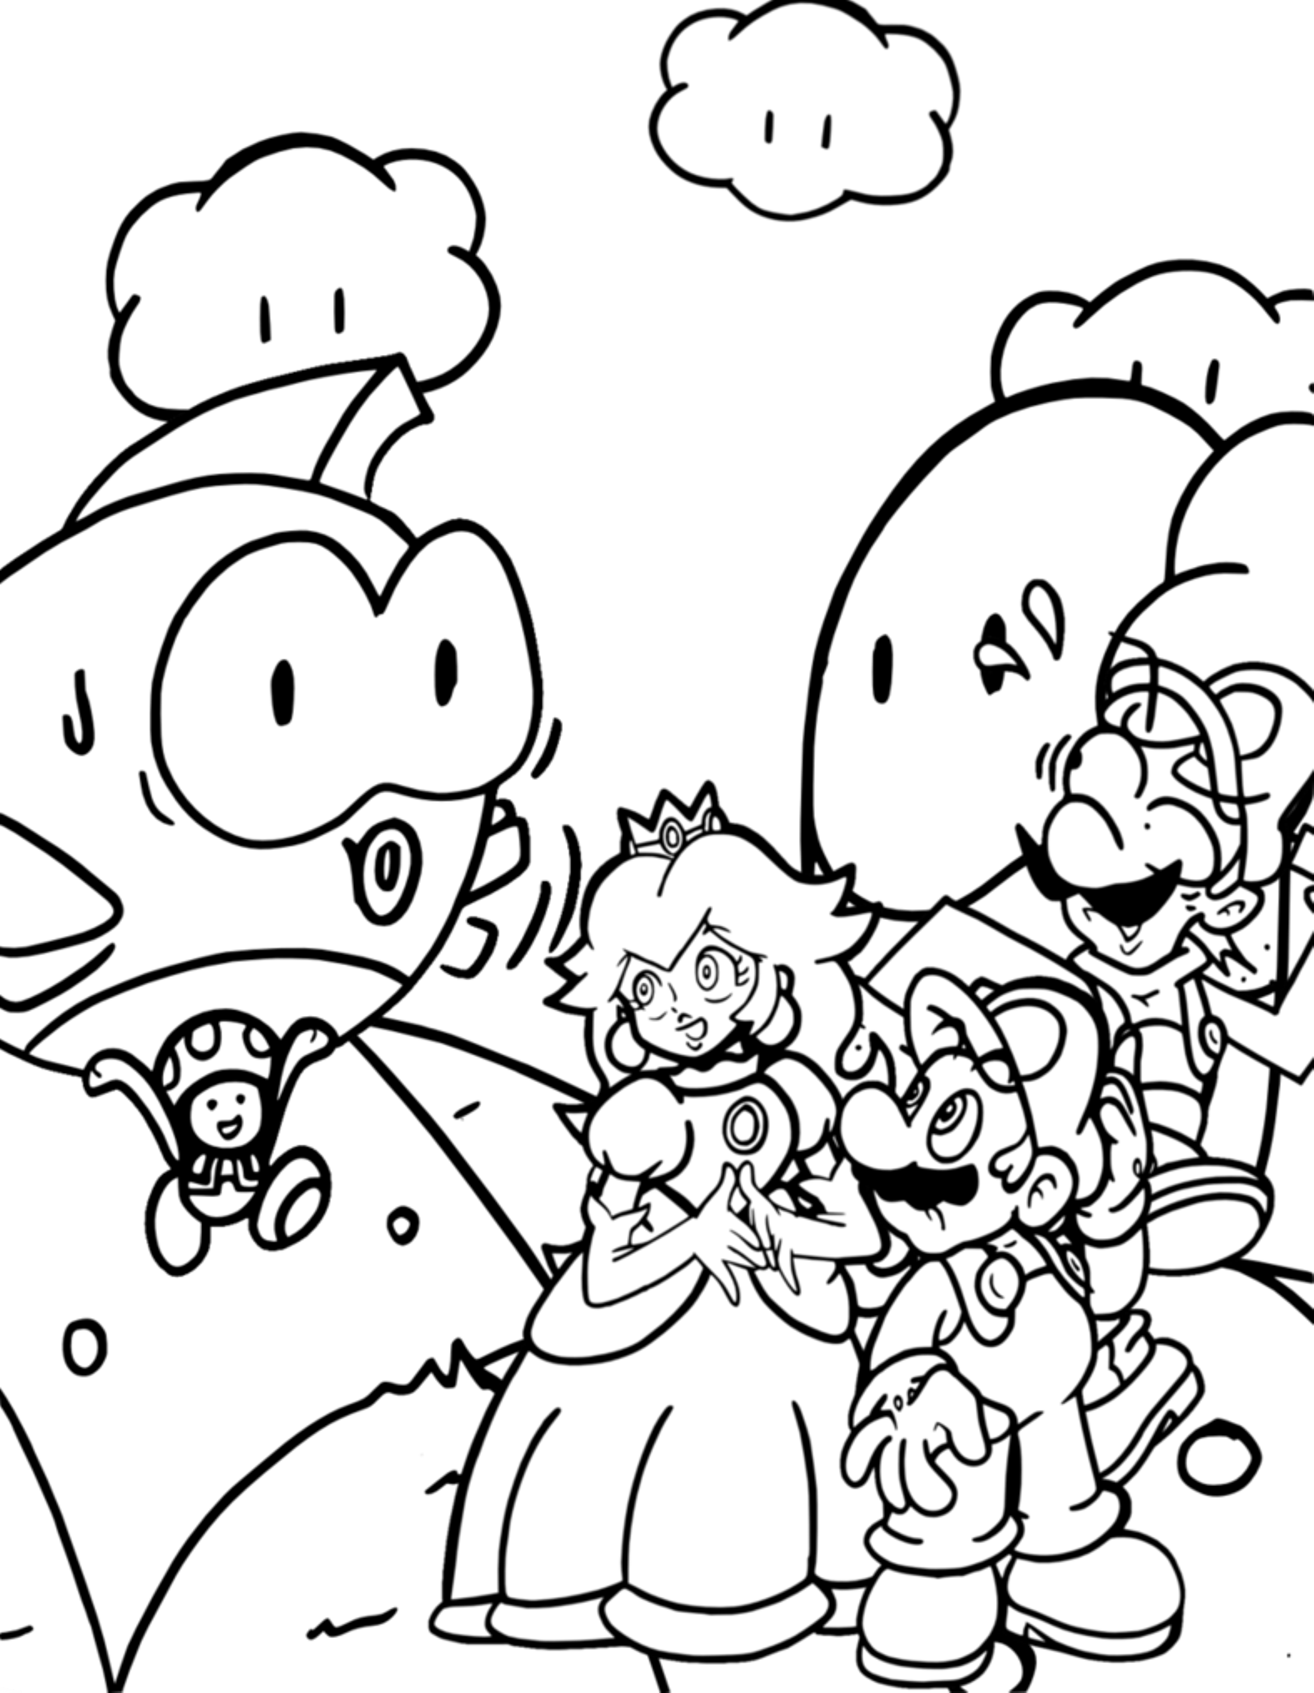 All Mario Characters Coloring Pages